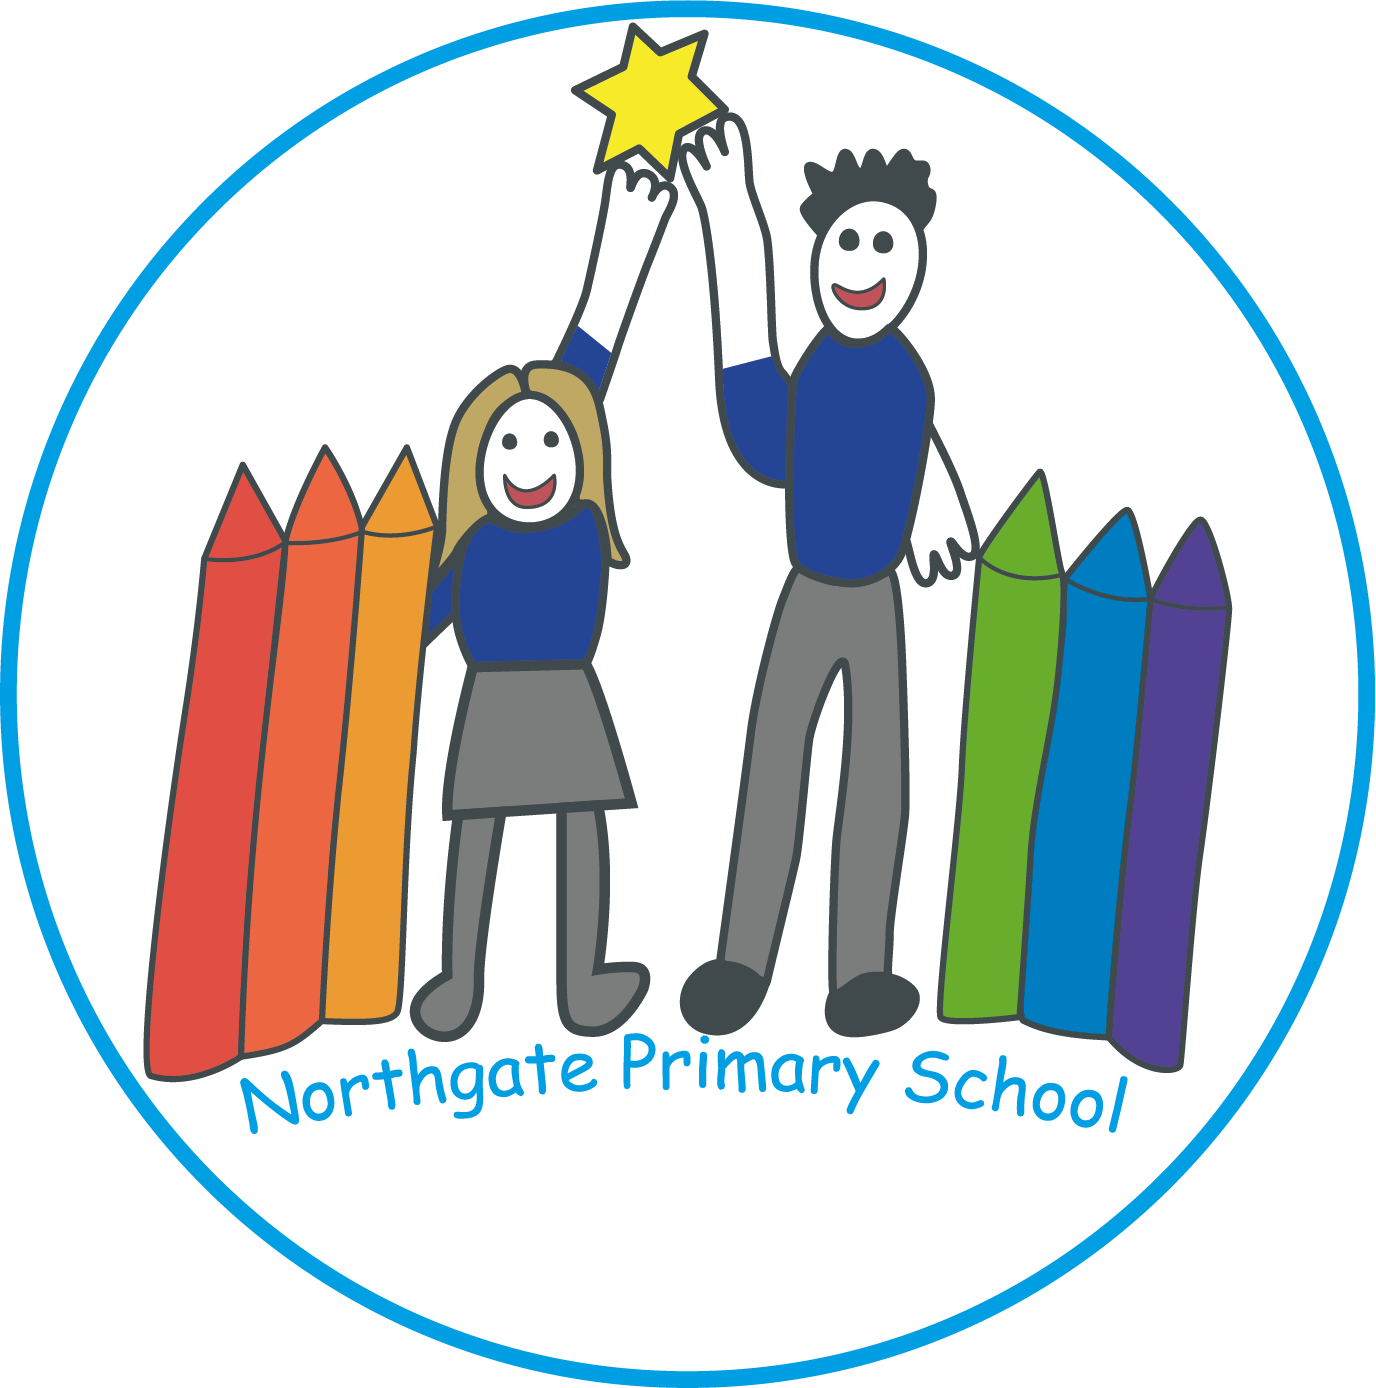 Proud clipart school evaluation. Home northgate primary